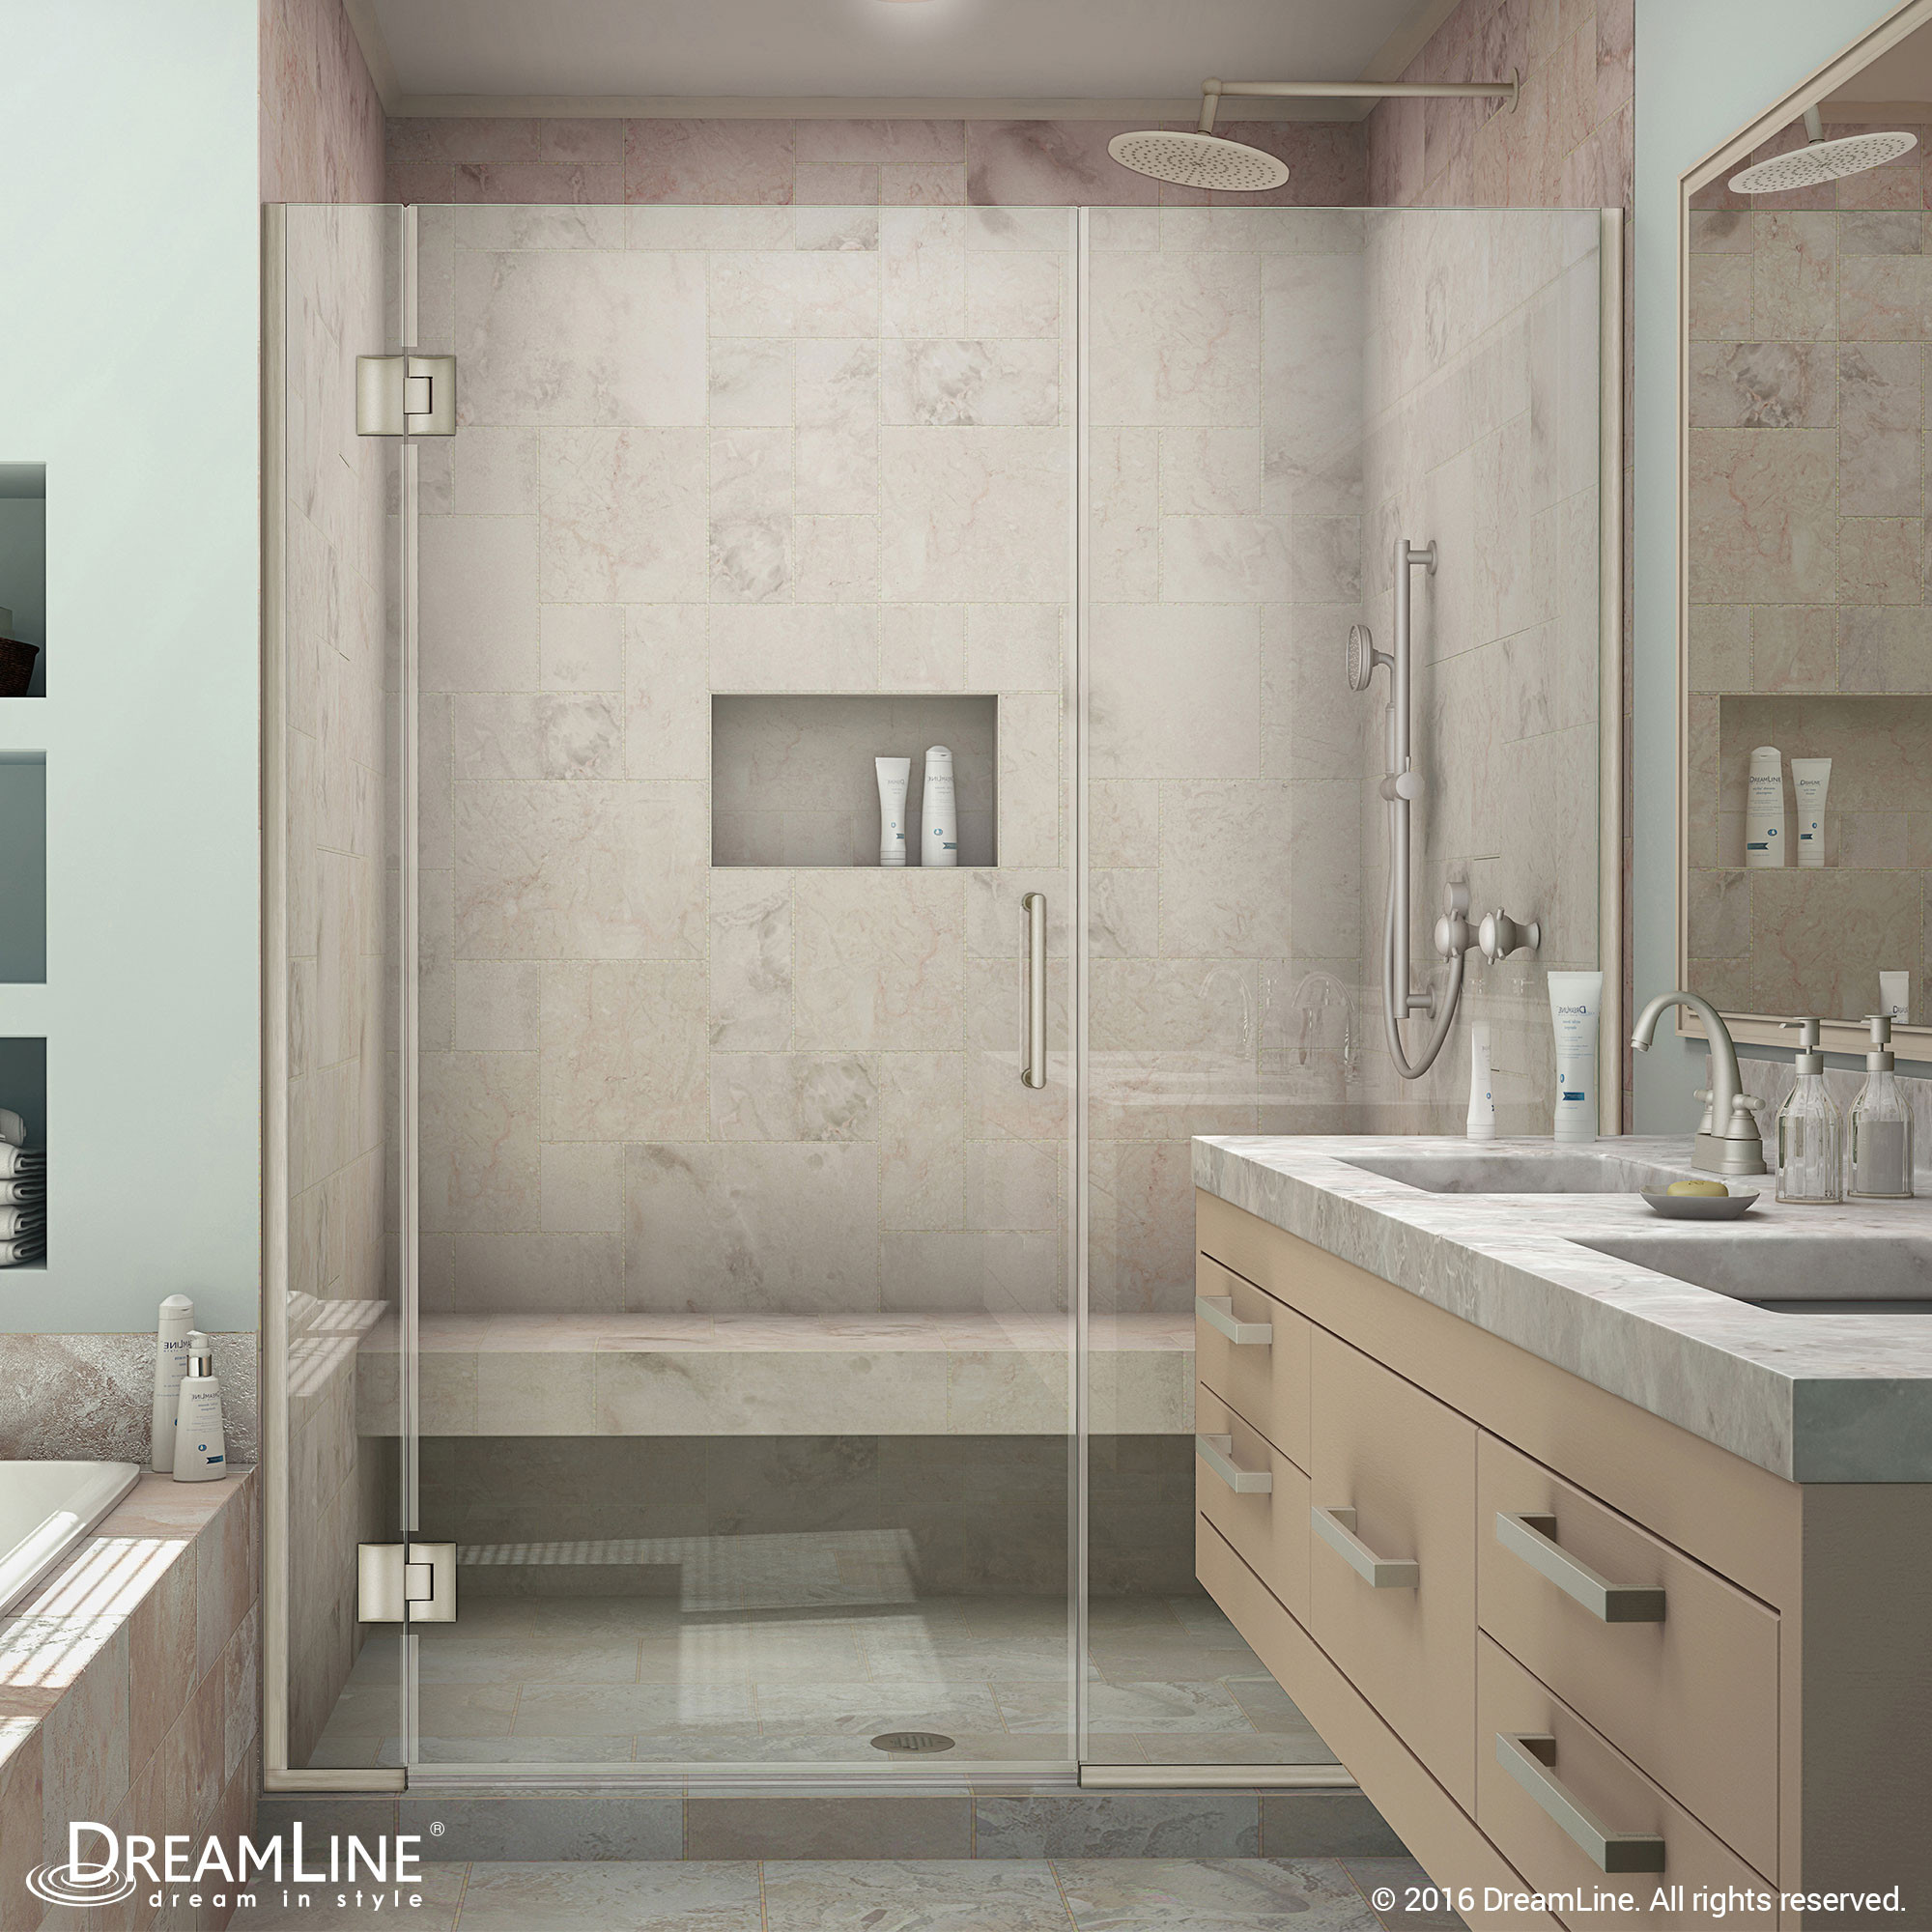 DreamLine D12830572-04 Brushed Nickel Unidoor-X 64 1/2 - 65 in. W x 72 in. H Hinged Shower Door